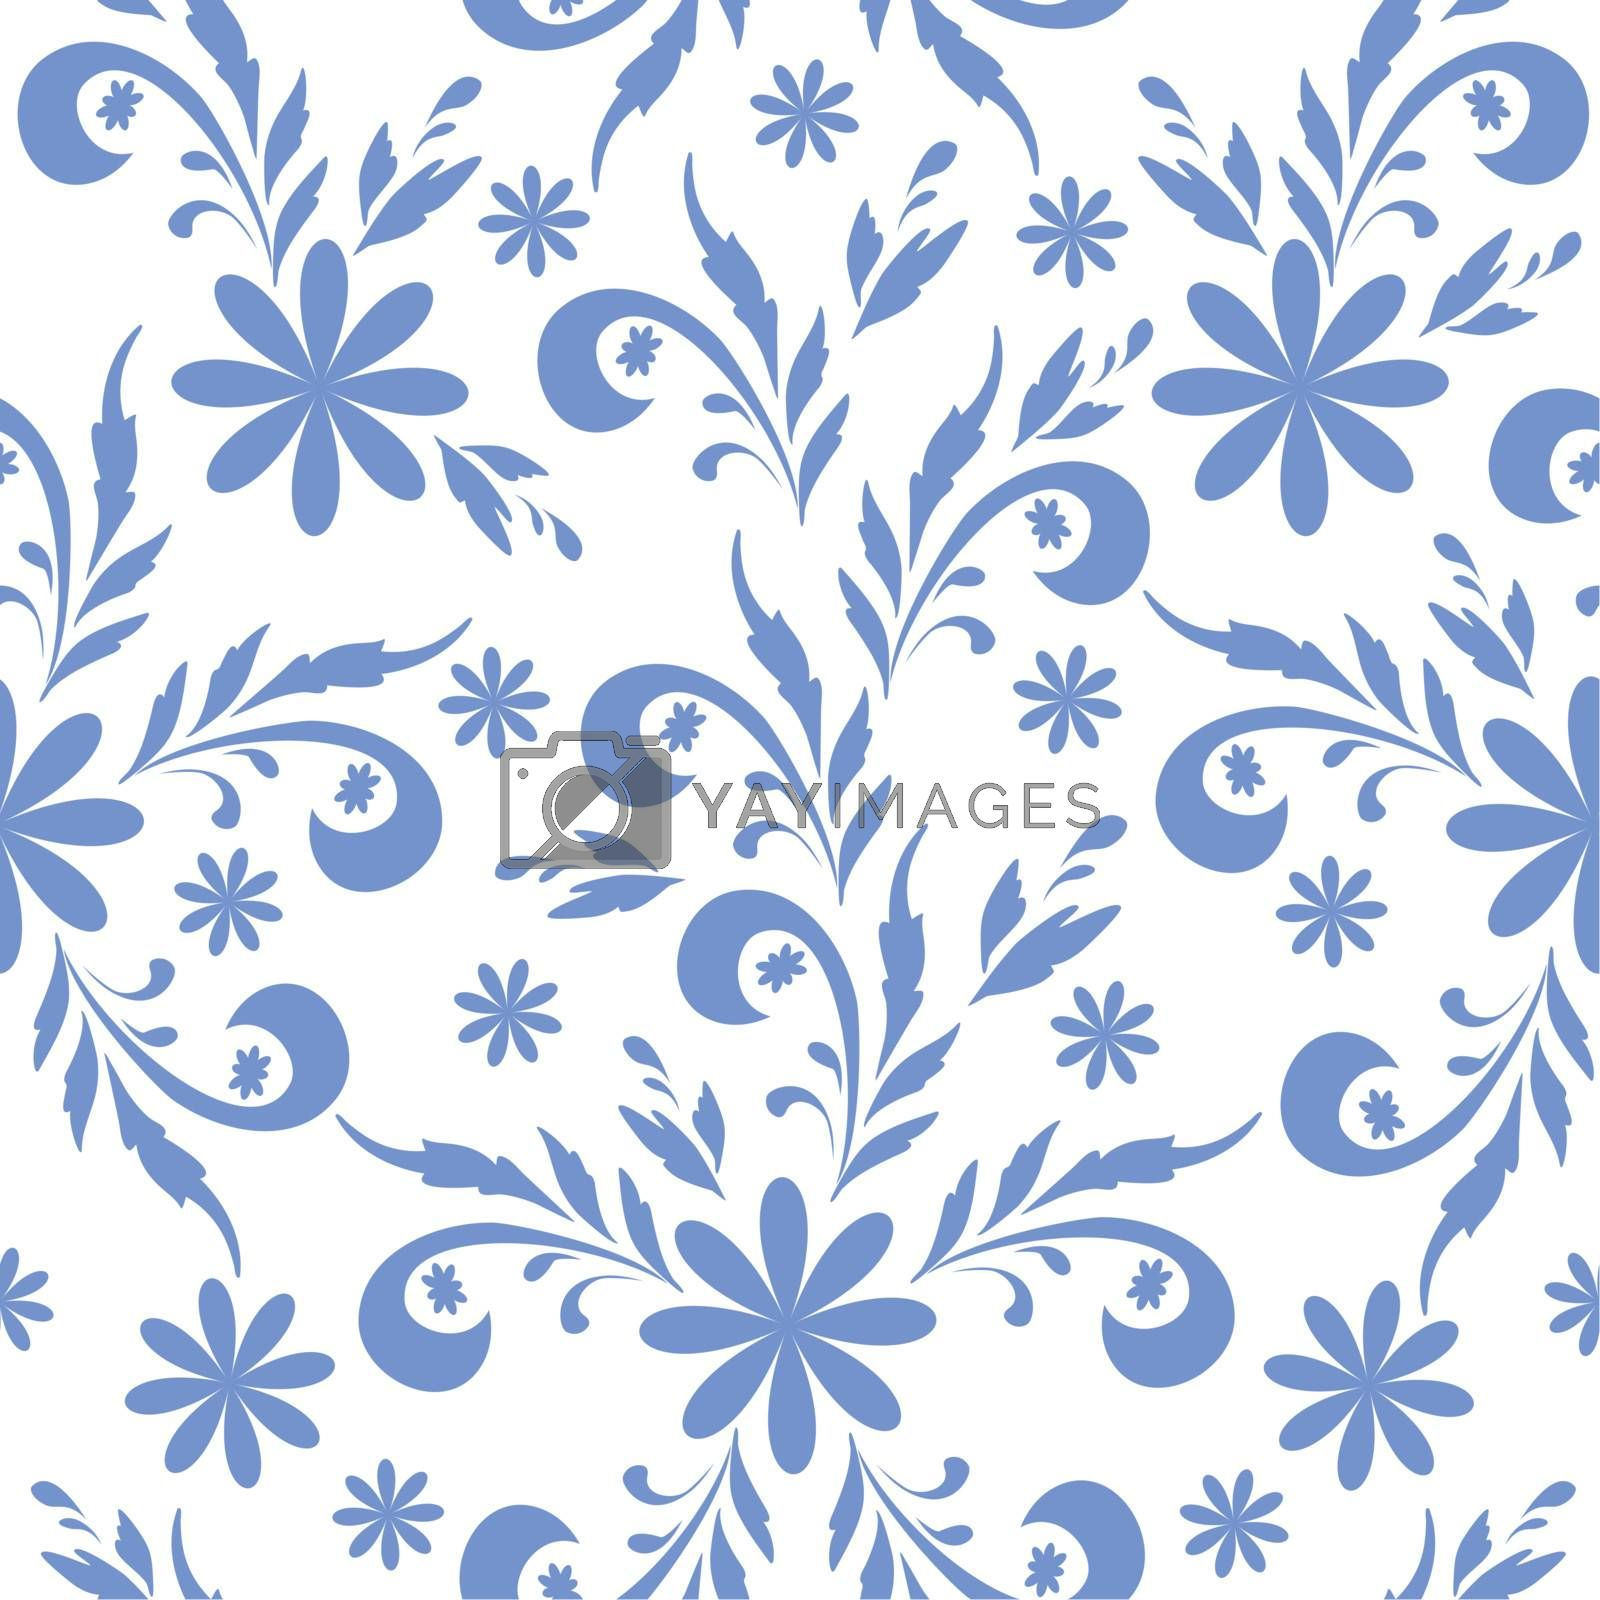 Seamless floral background by alexcoolok